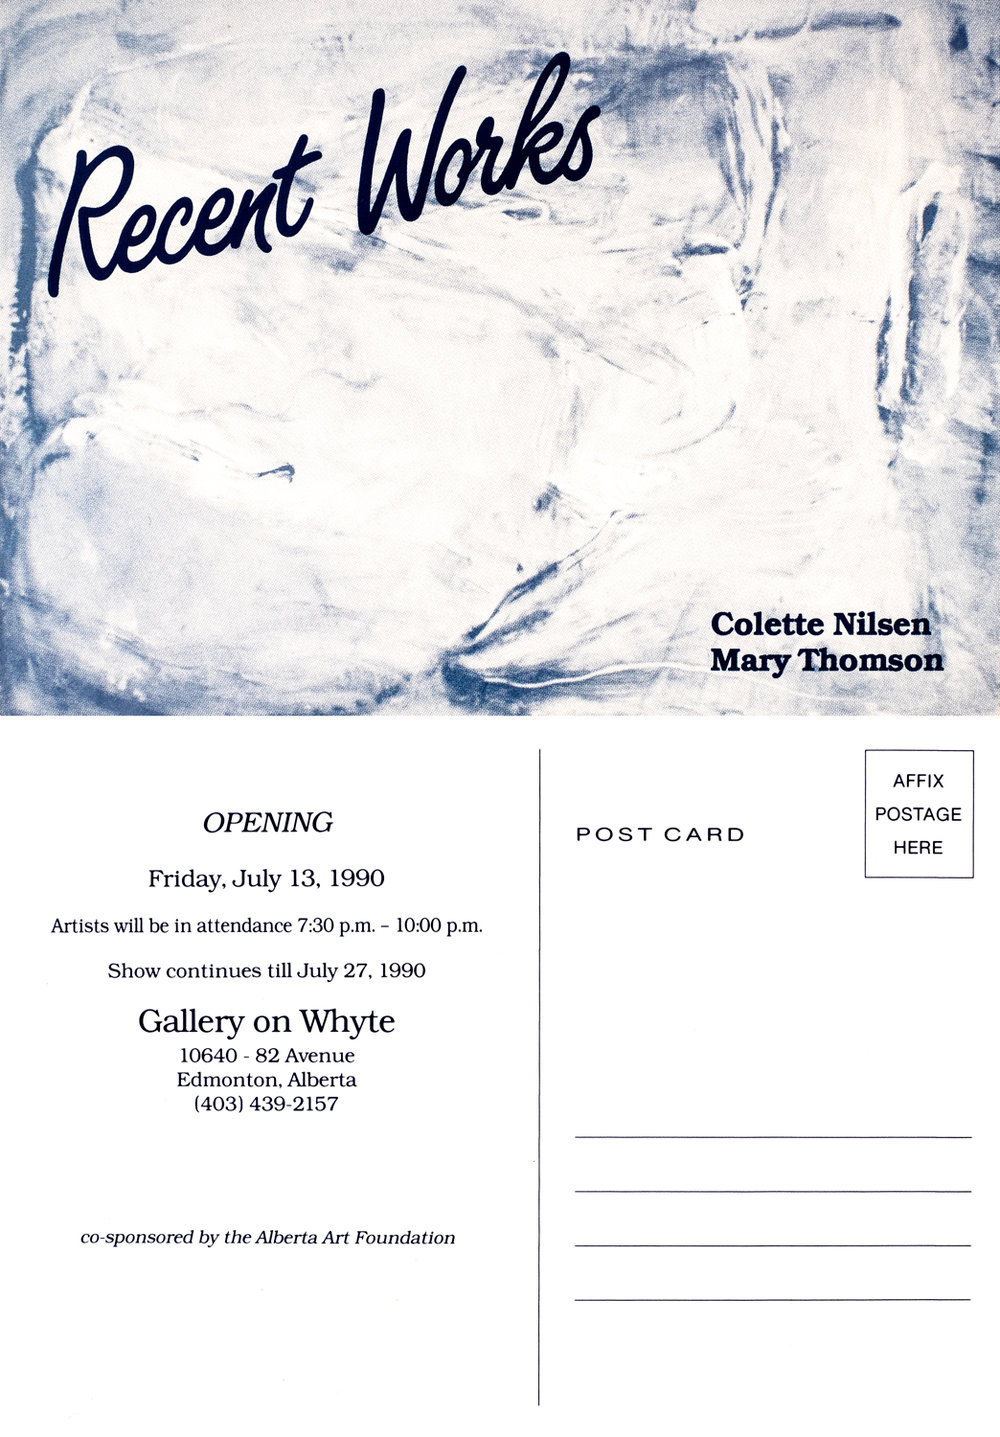 1990 Gallery Whyte invitation